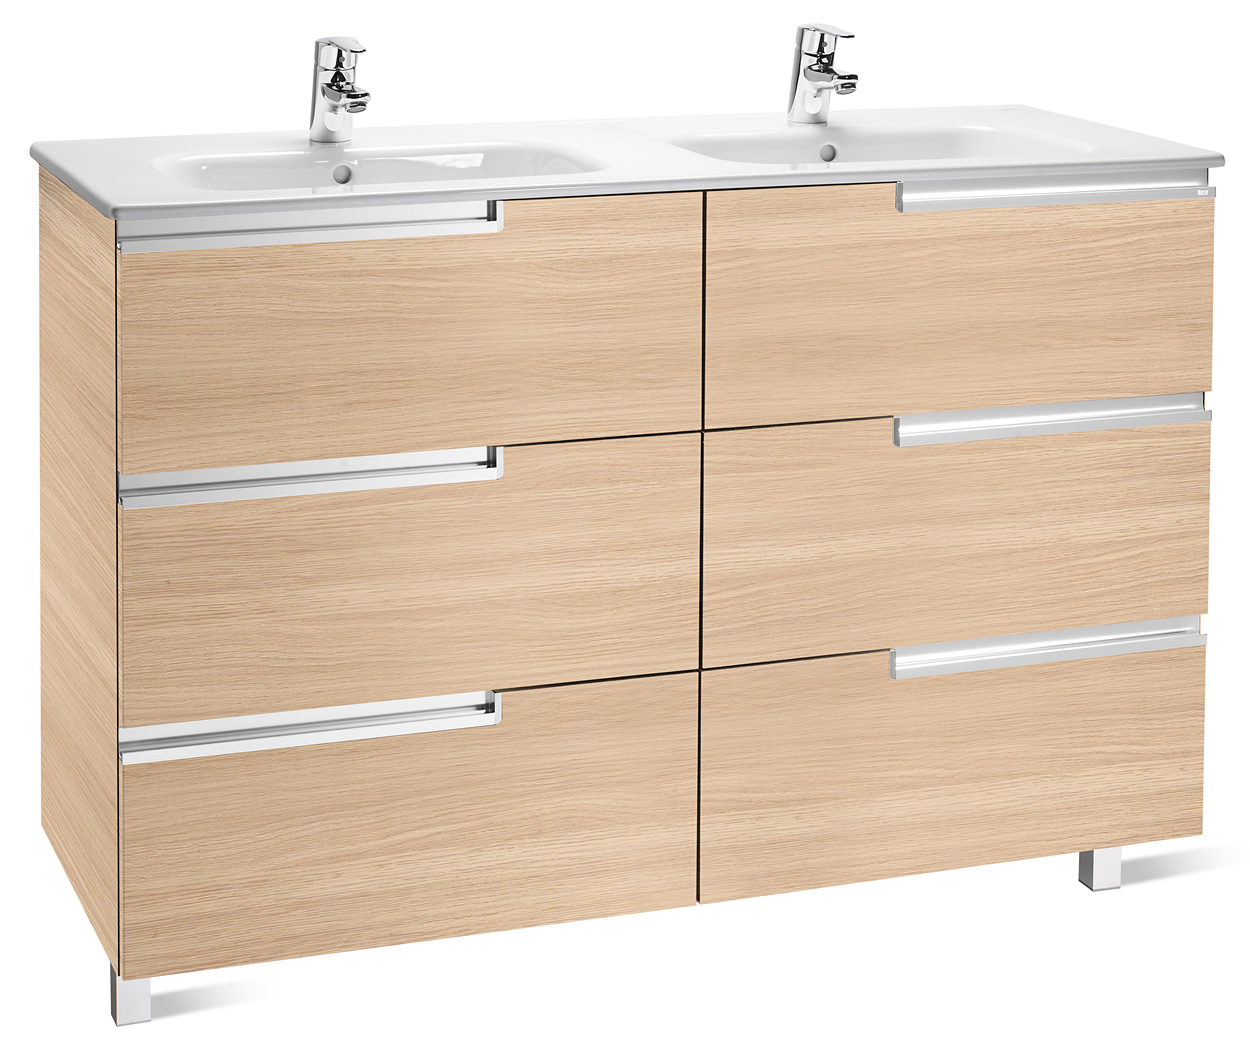 Roca victoria n unik basin and unit with 6 drawers 1200mm for Mueble unik victoria